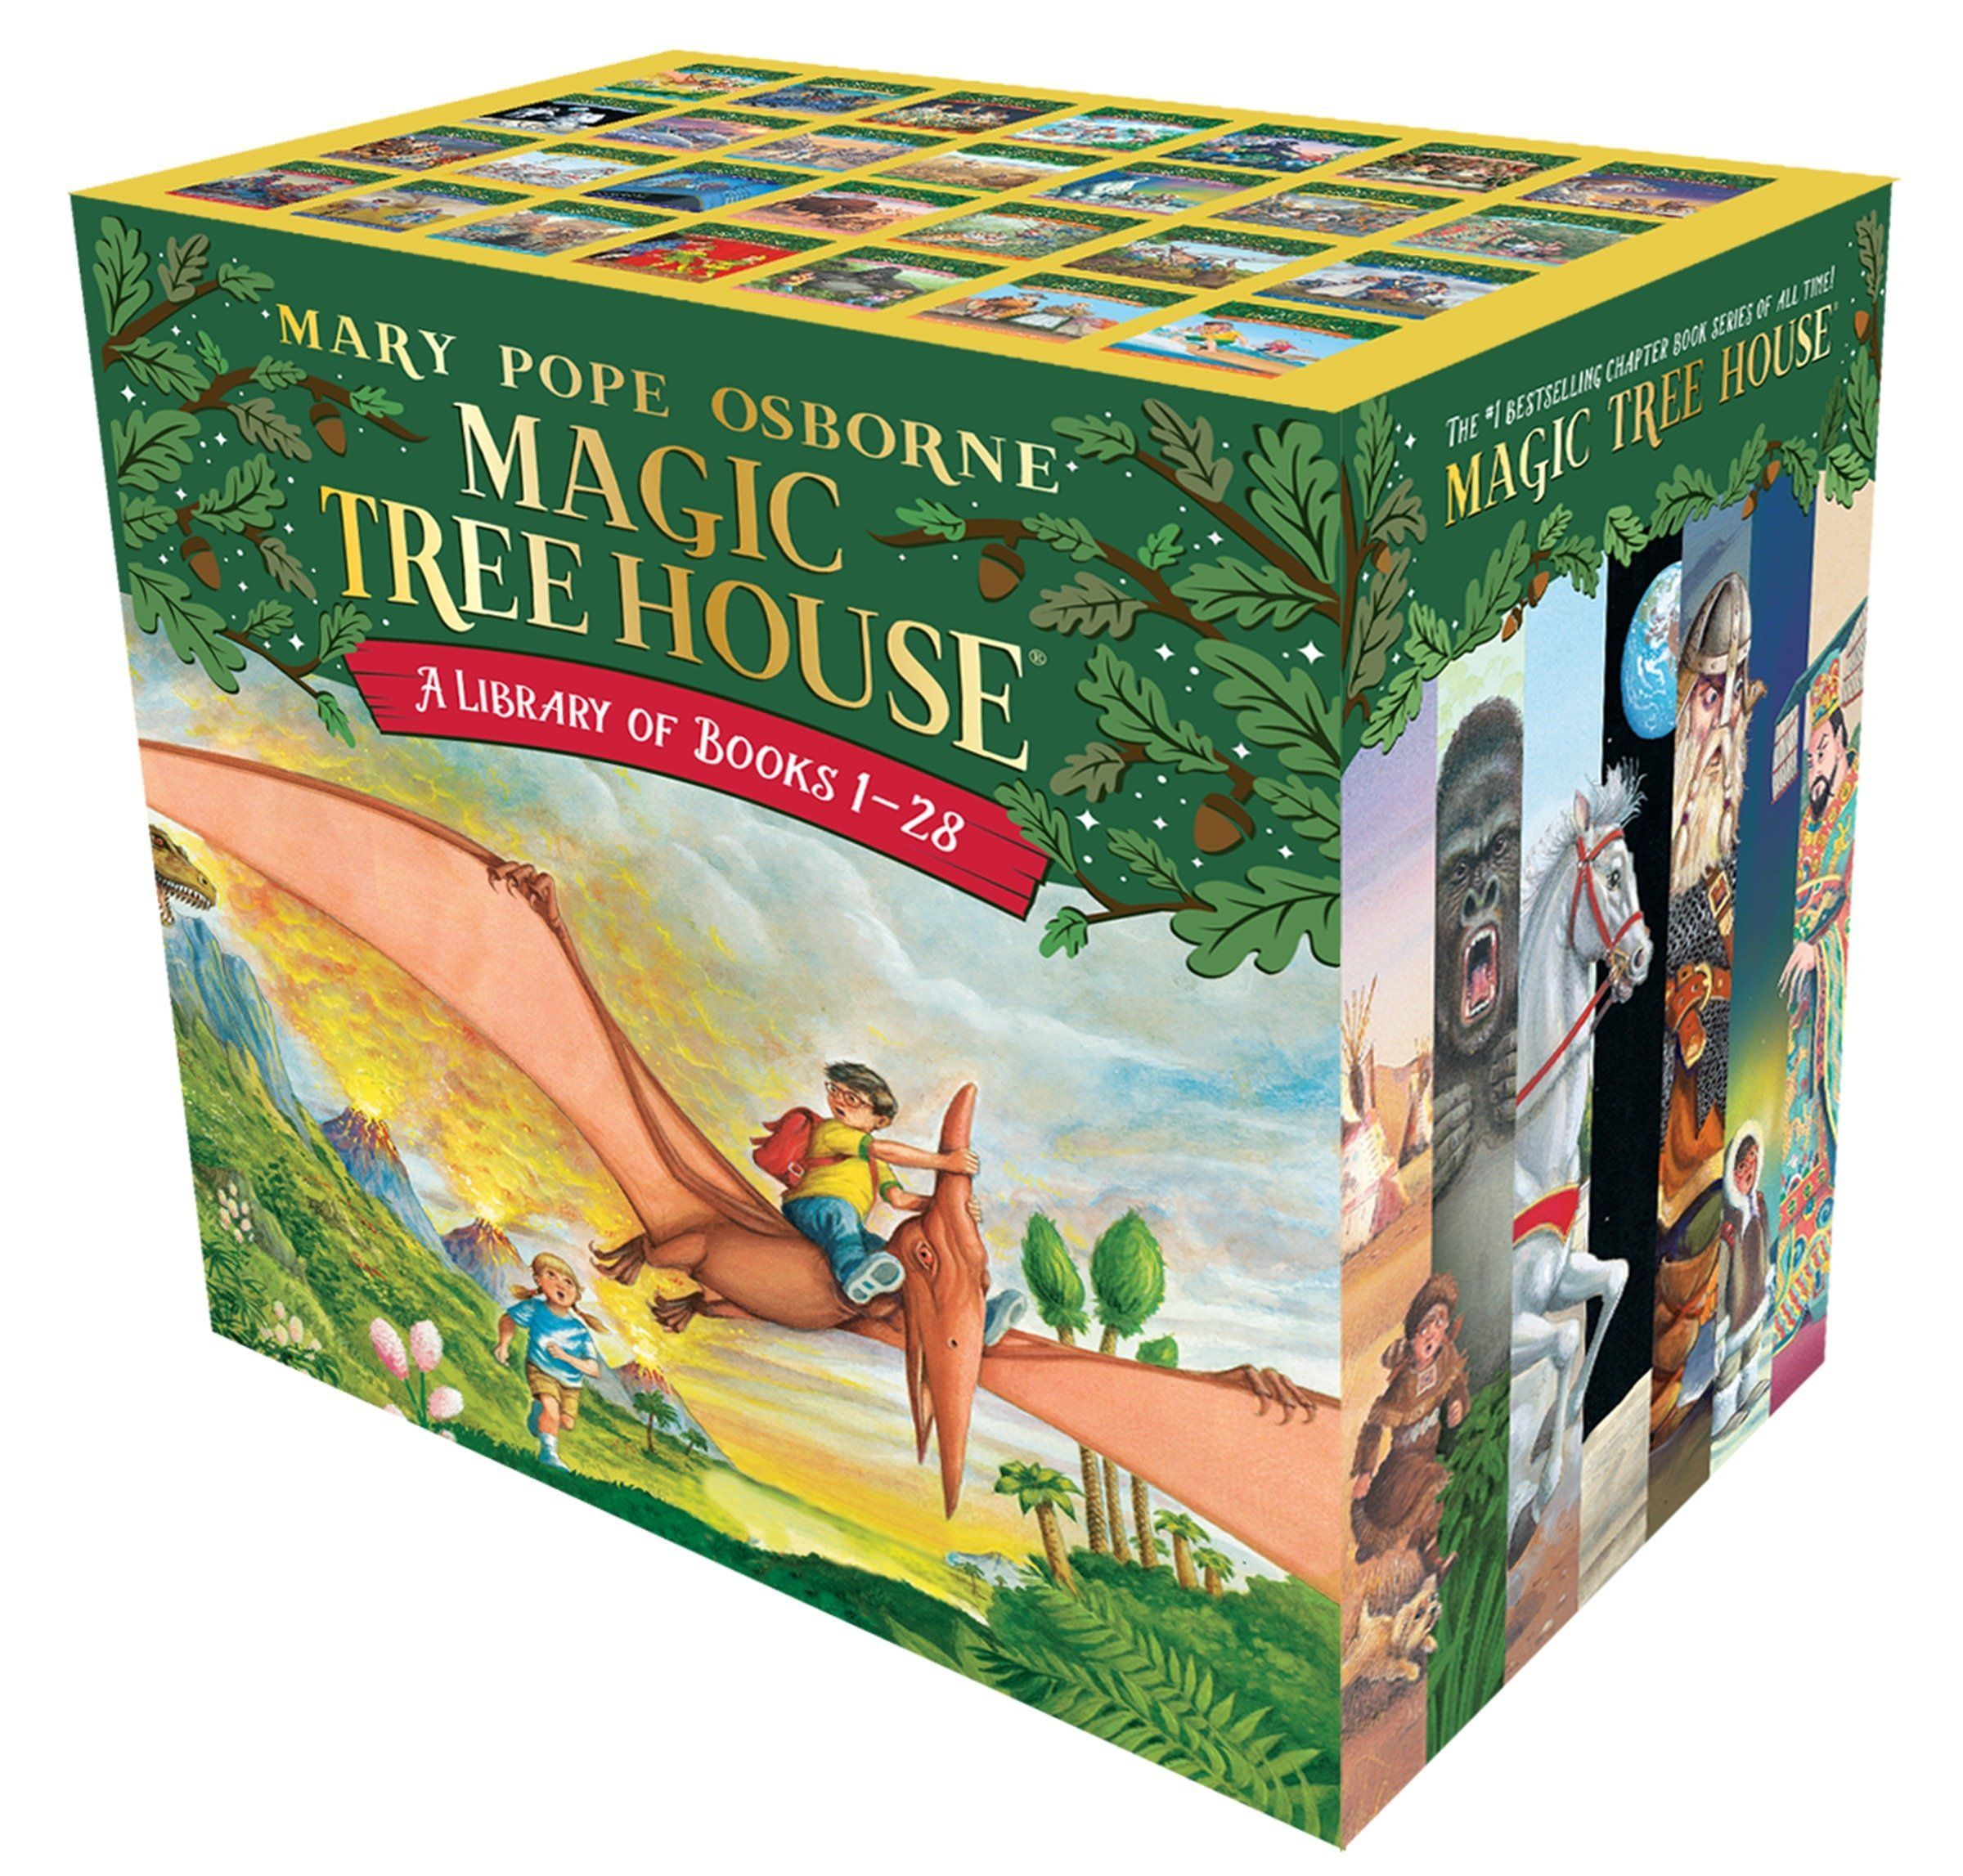 Magic Tree House Boxed Set, Books 1-28 by Osborne, Mary Pope